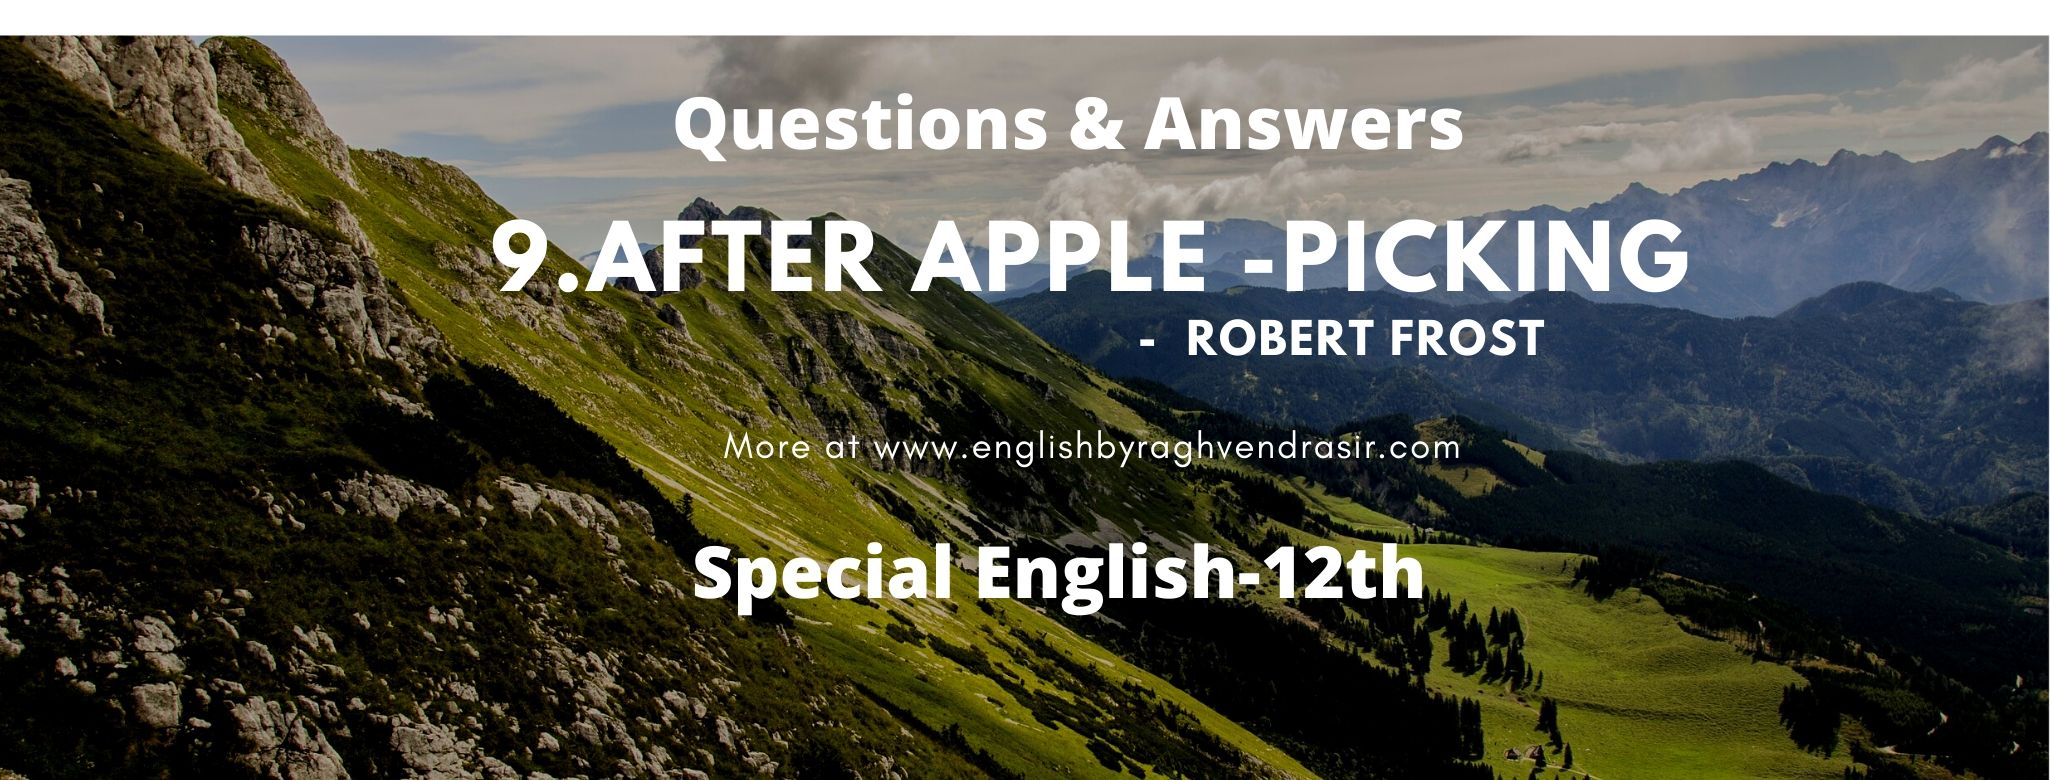 After Apple -Picking by Robert Frost